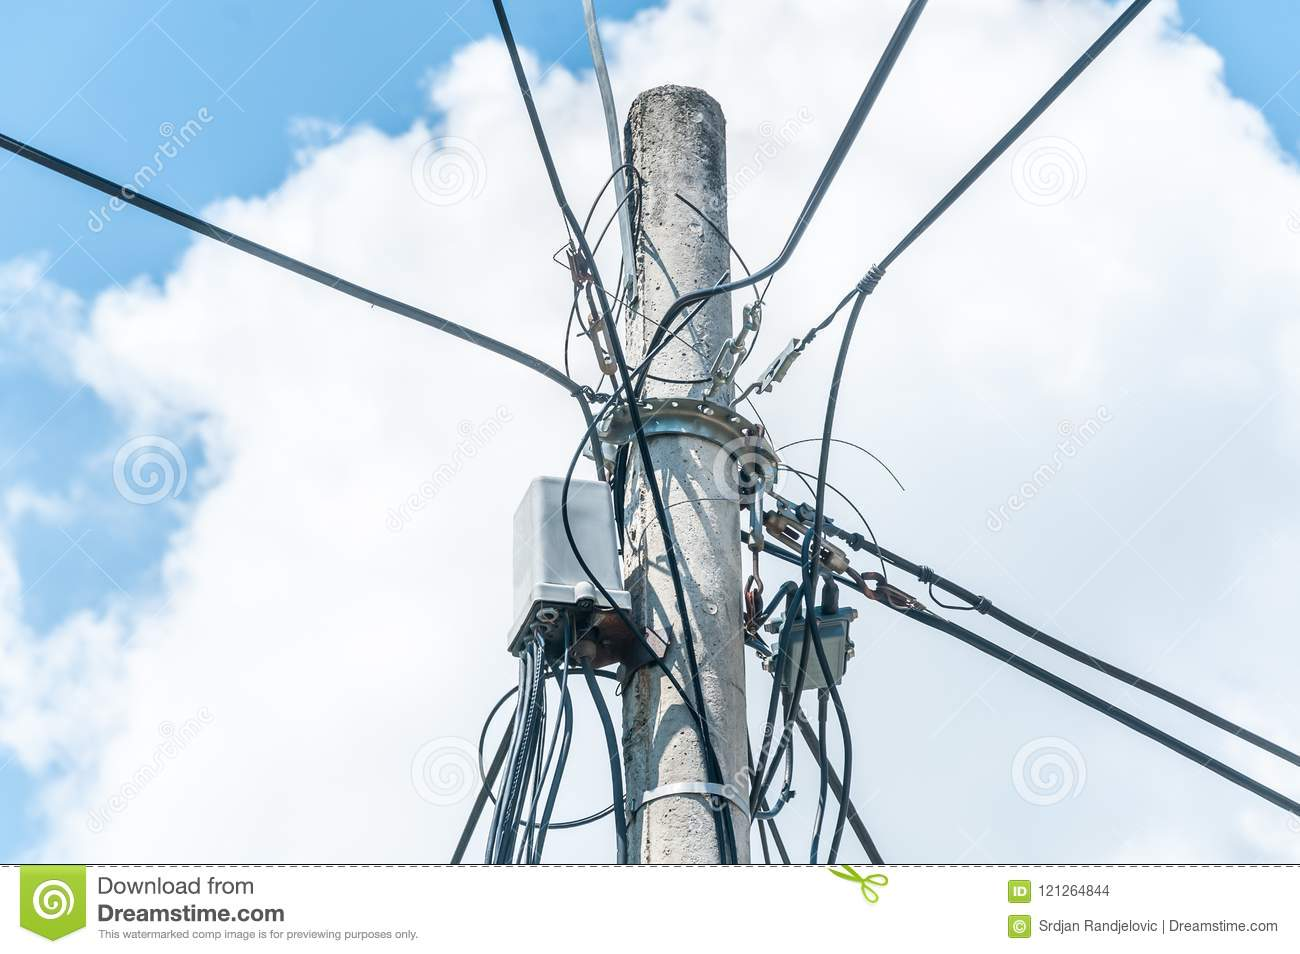 Many Electric Wires On Concrete Street Pole With Internet Or Cell Wiring Phone Box Communication And Blue